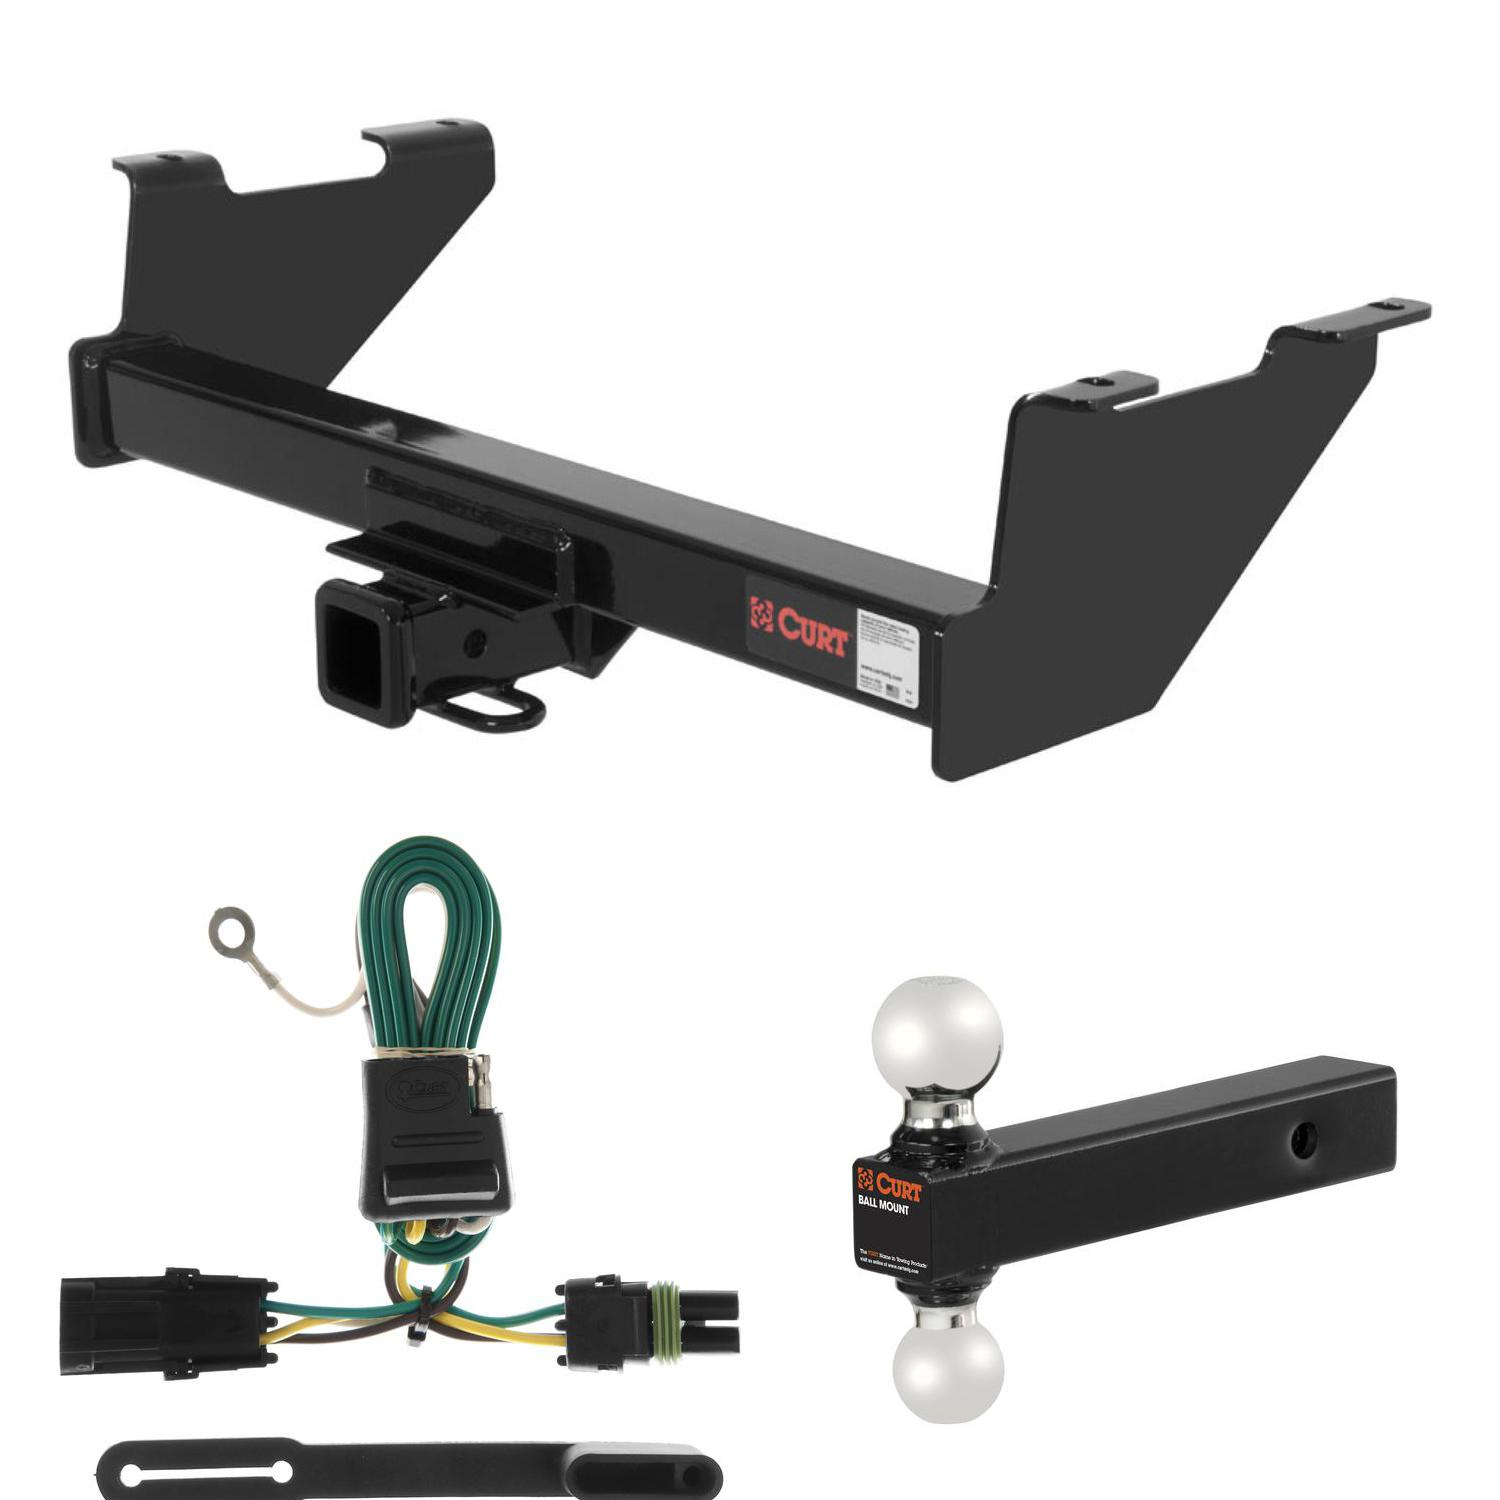 Superb Curt Trailer Hitch Wiring Multi Ball Ball Mount For Chevy Blazer Wiring 101 Relewellnesstrialsorg